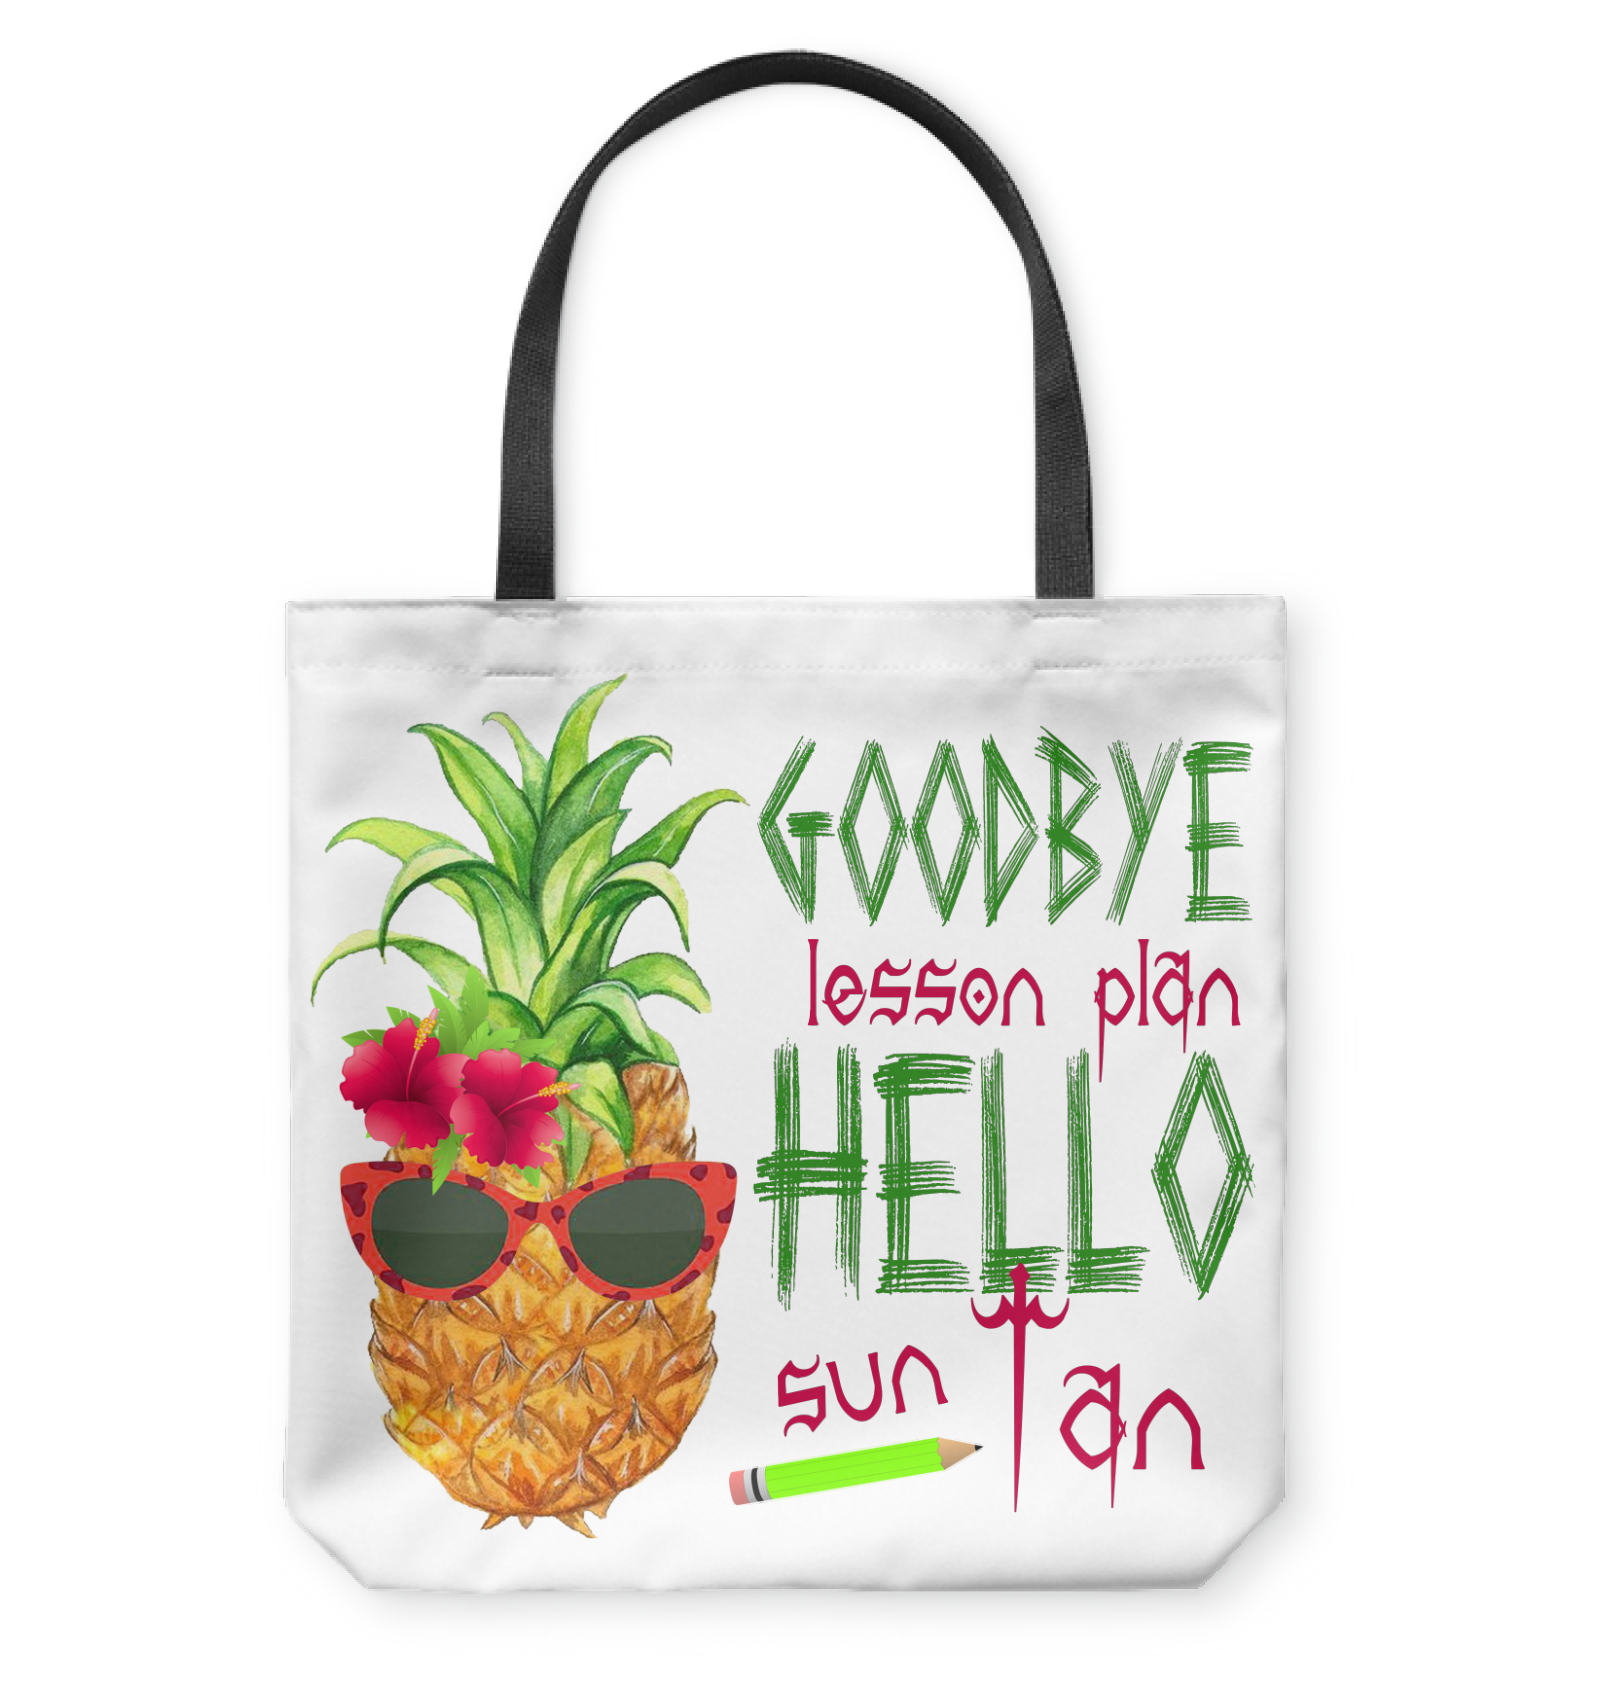 VIRA summer vacation tote bag for awesome teachers